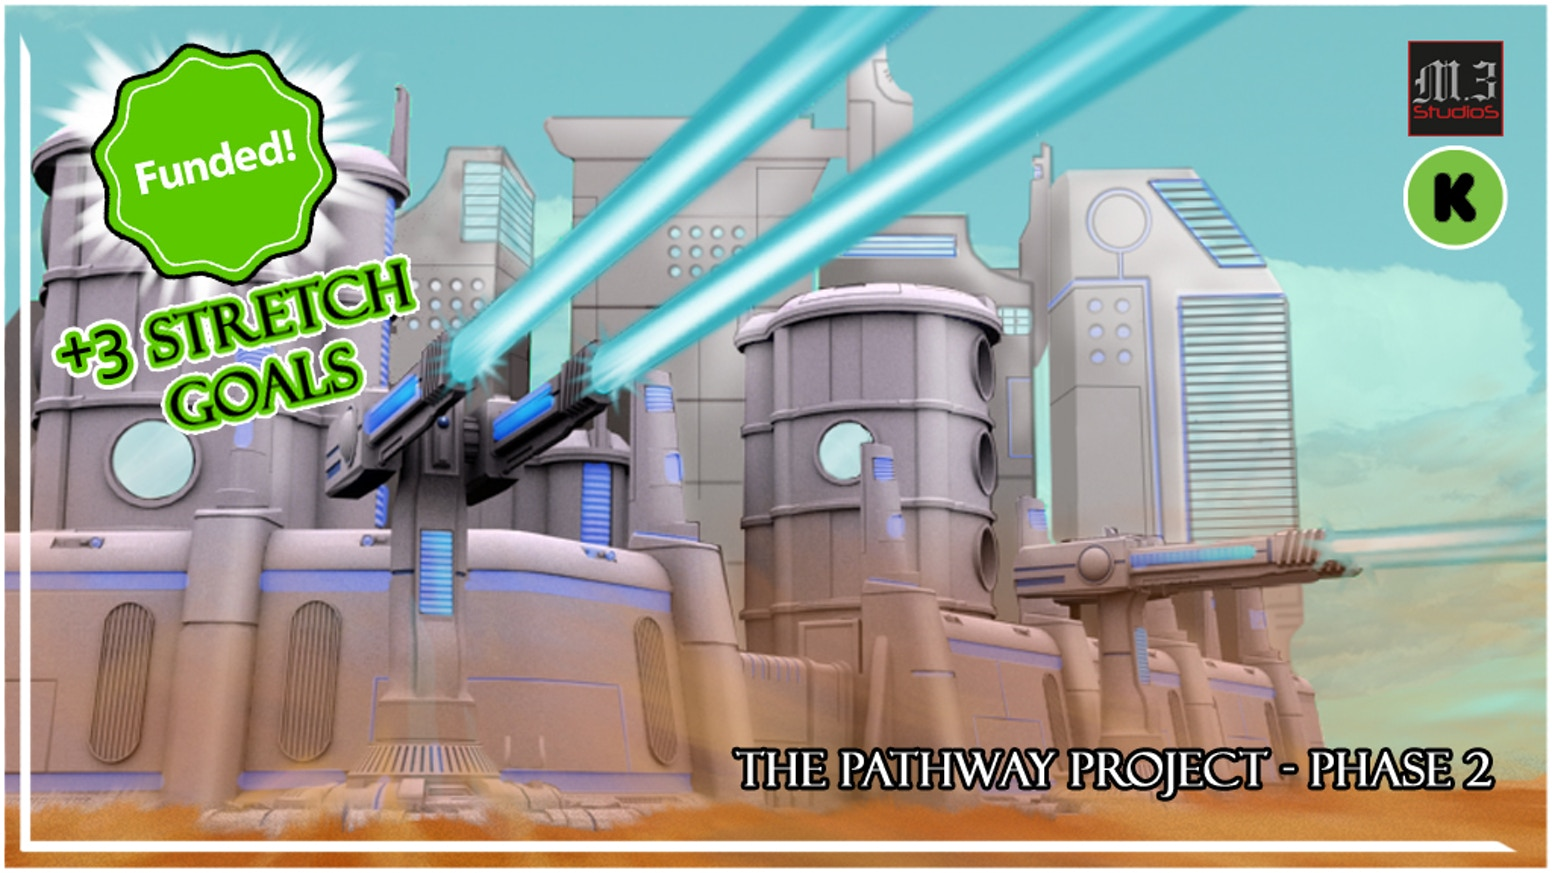 The Pathway Project - Phase 2 - Sci-Fi Wargame Terrain by M3Studios